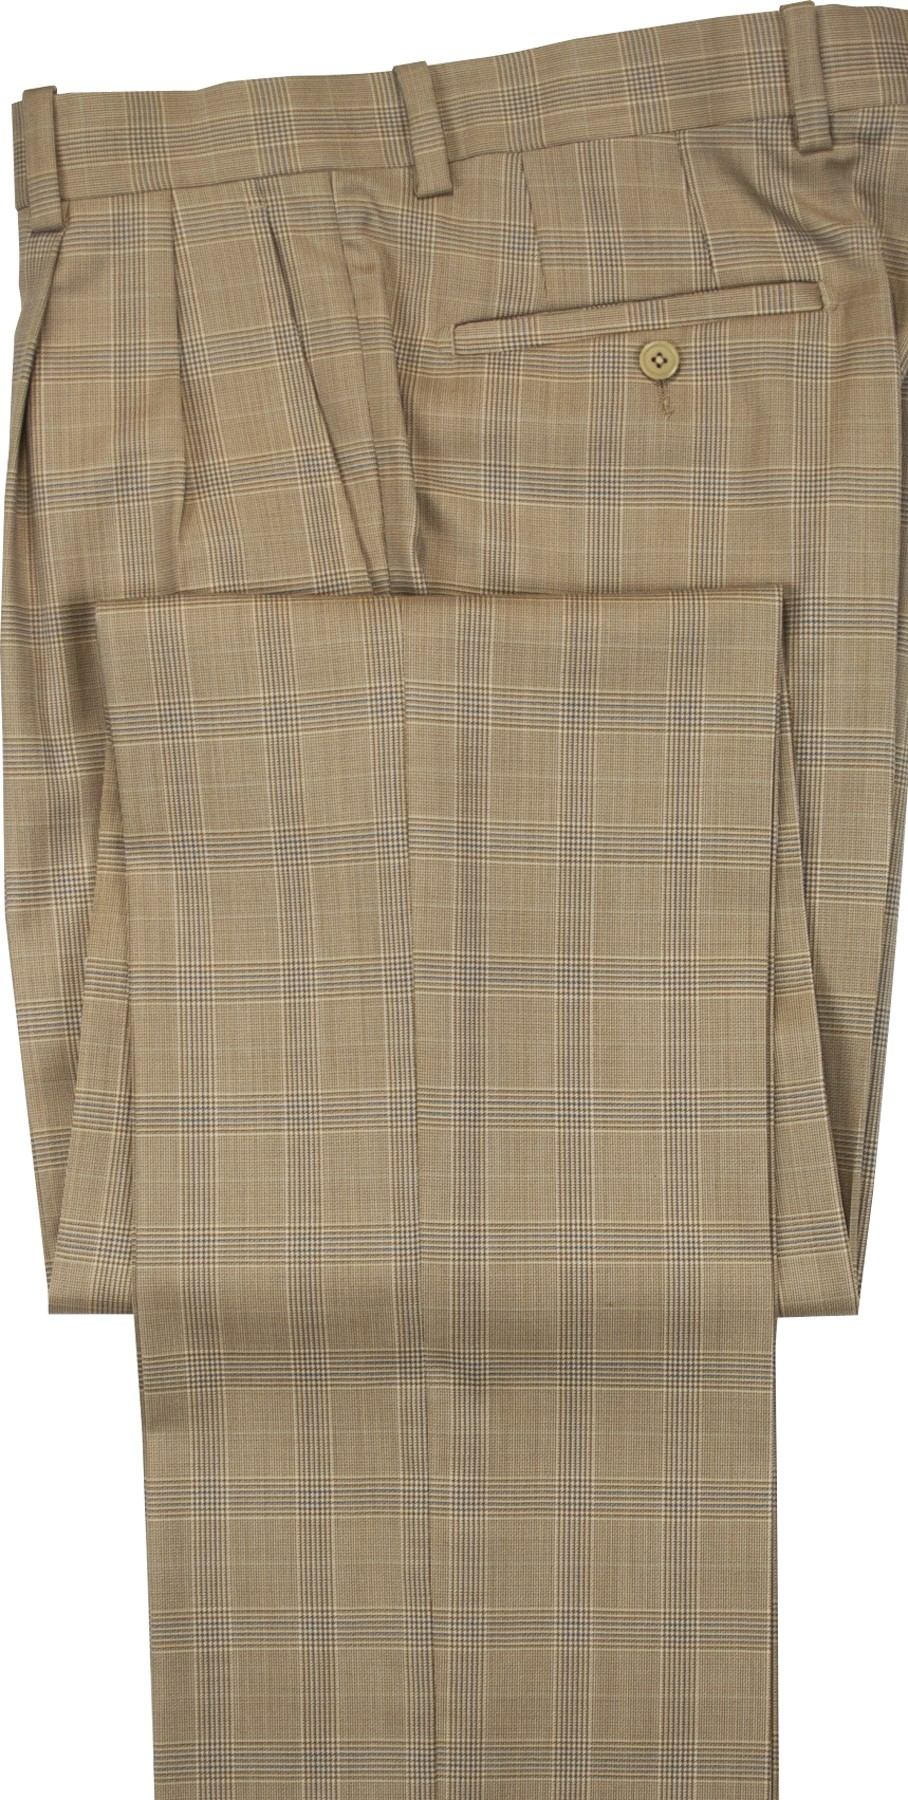 "Aristo 18 ""Aberdeen"" Pleated Trouser - Luxury Wool Plaids"